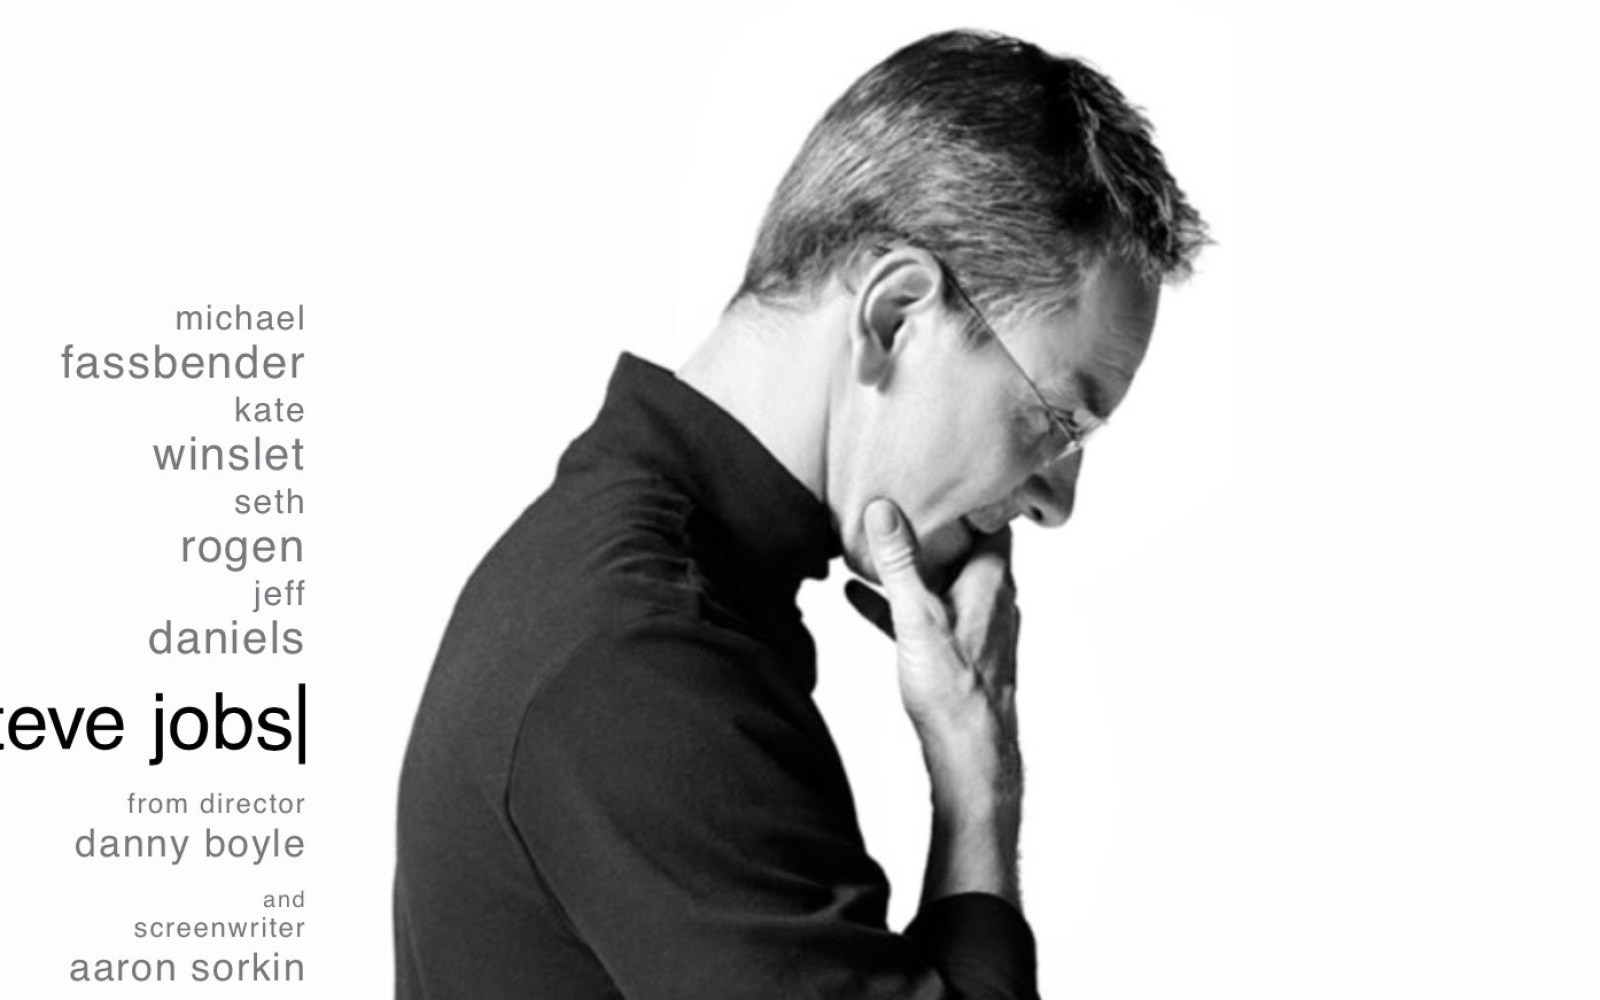 'Steve Jobs' biopic now available to buy on Blu-ray and DVD